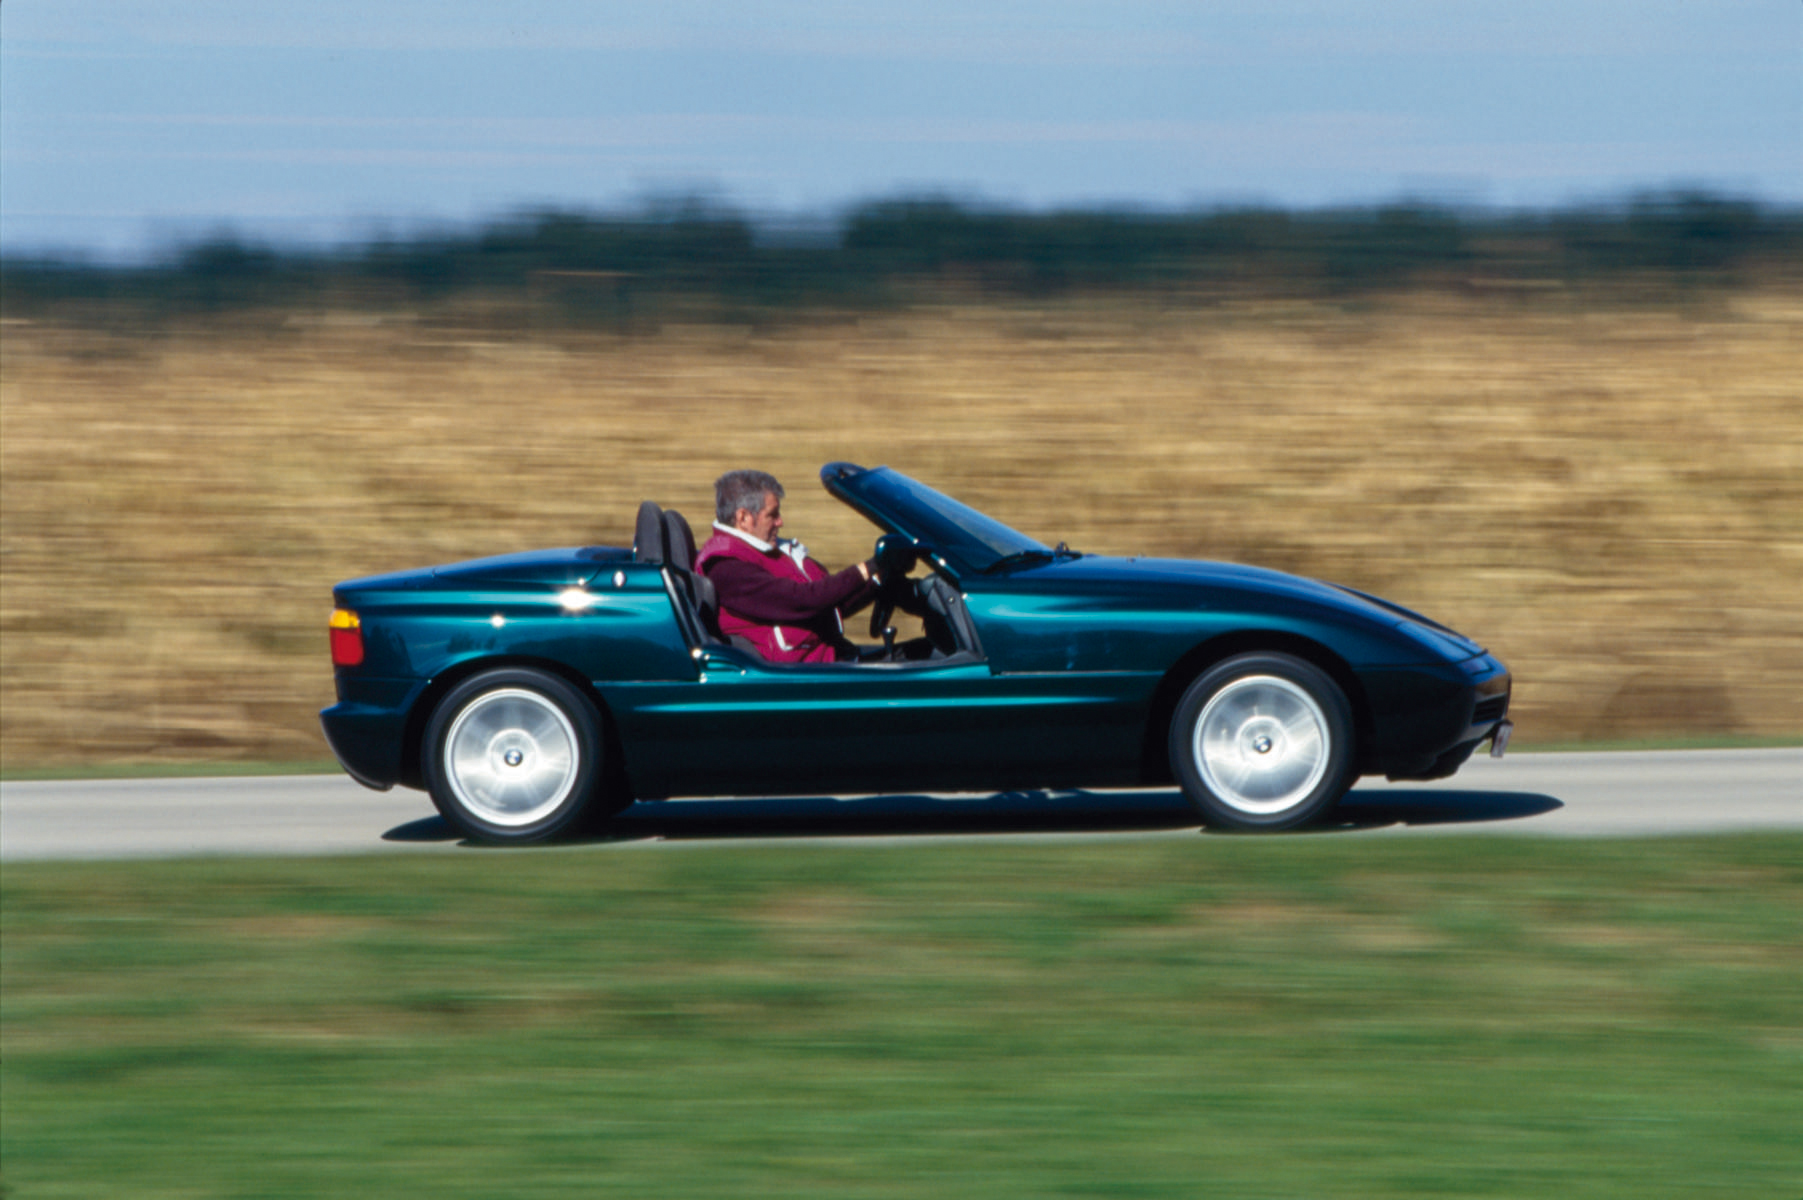 p90096544-highres Astounding Bmw Z1 for Sale In Usa Cars Trend